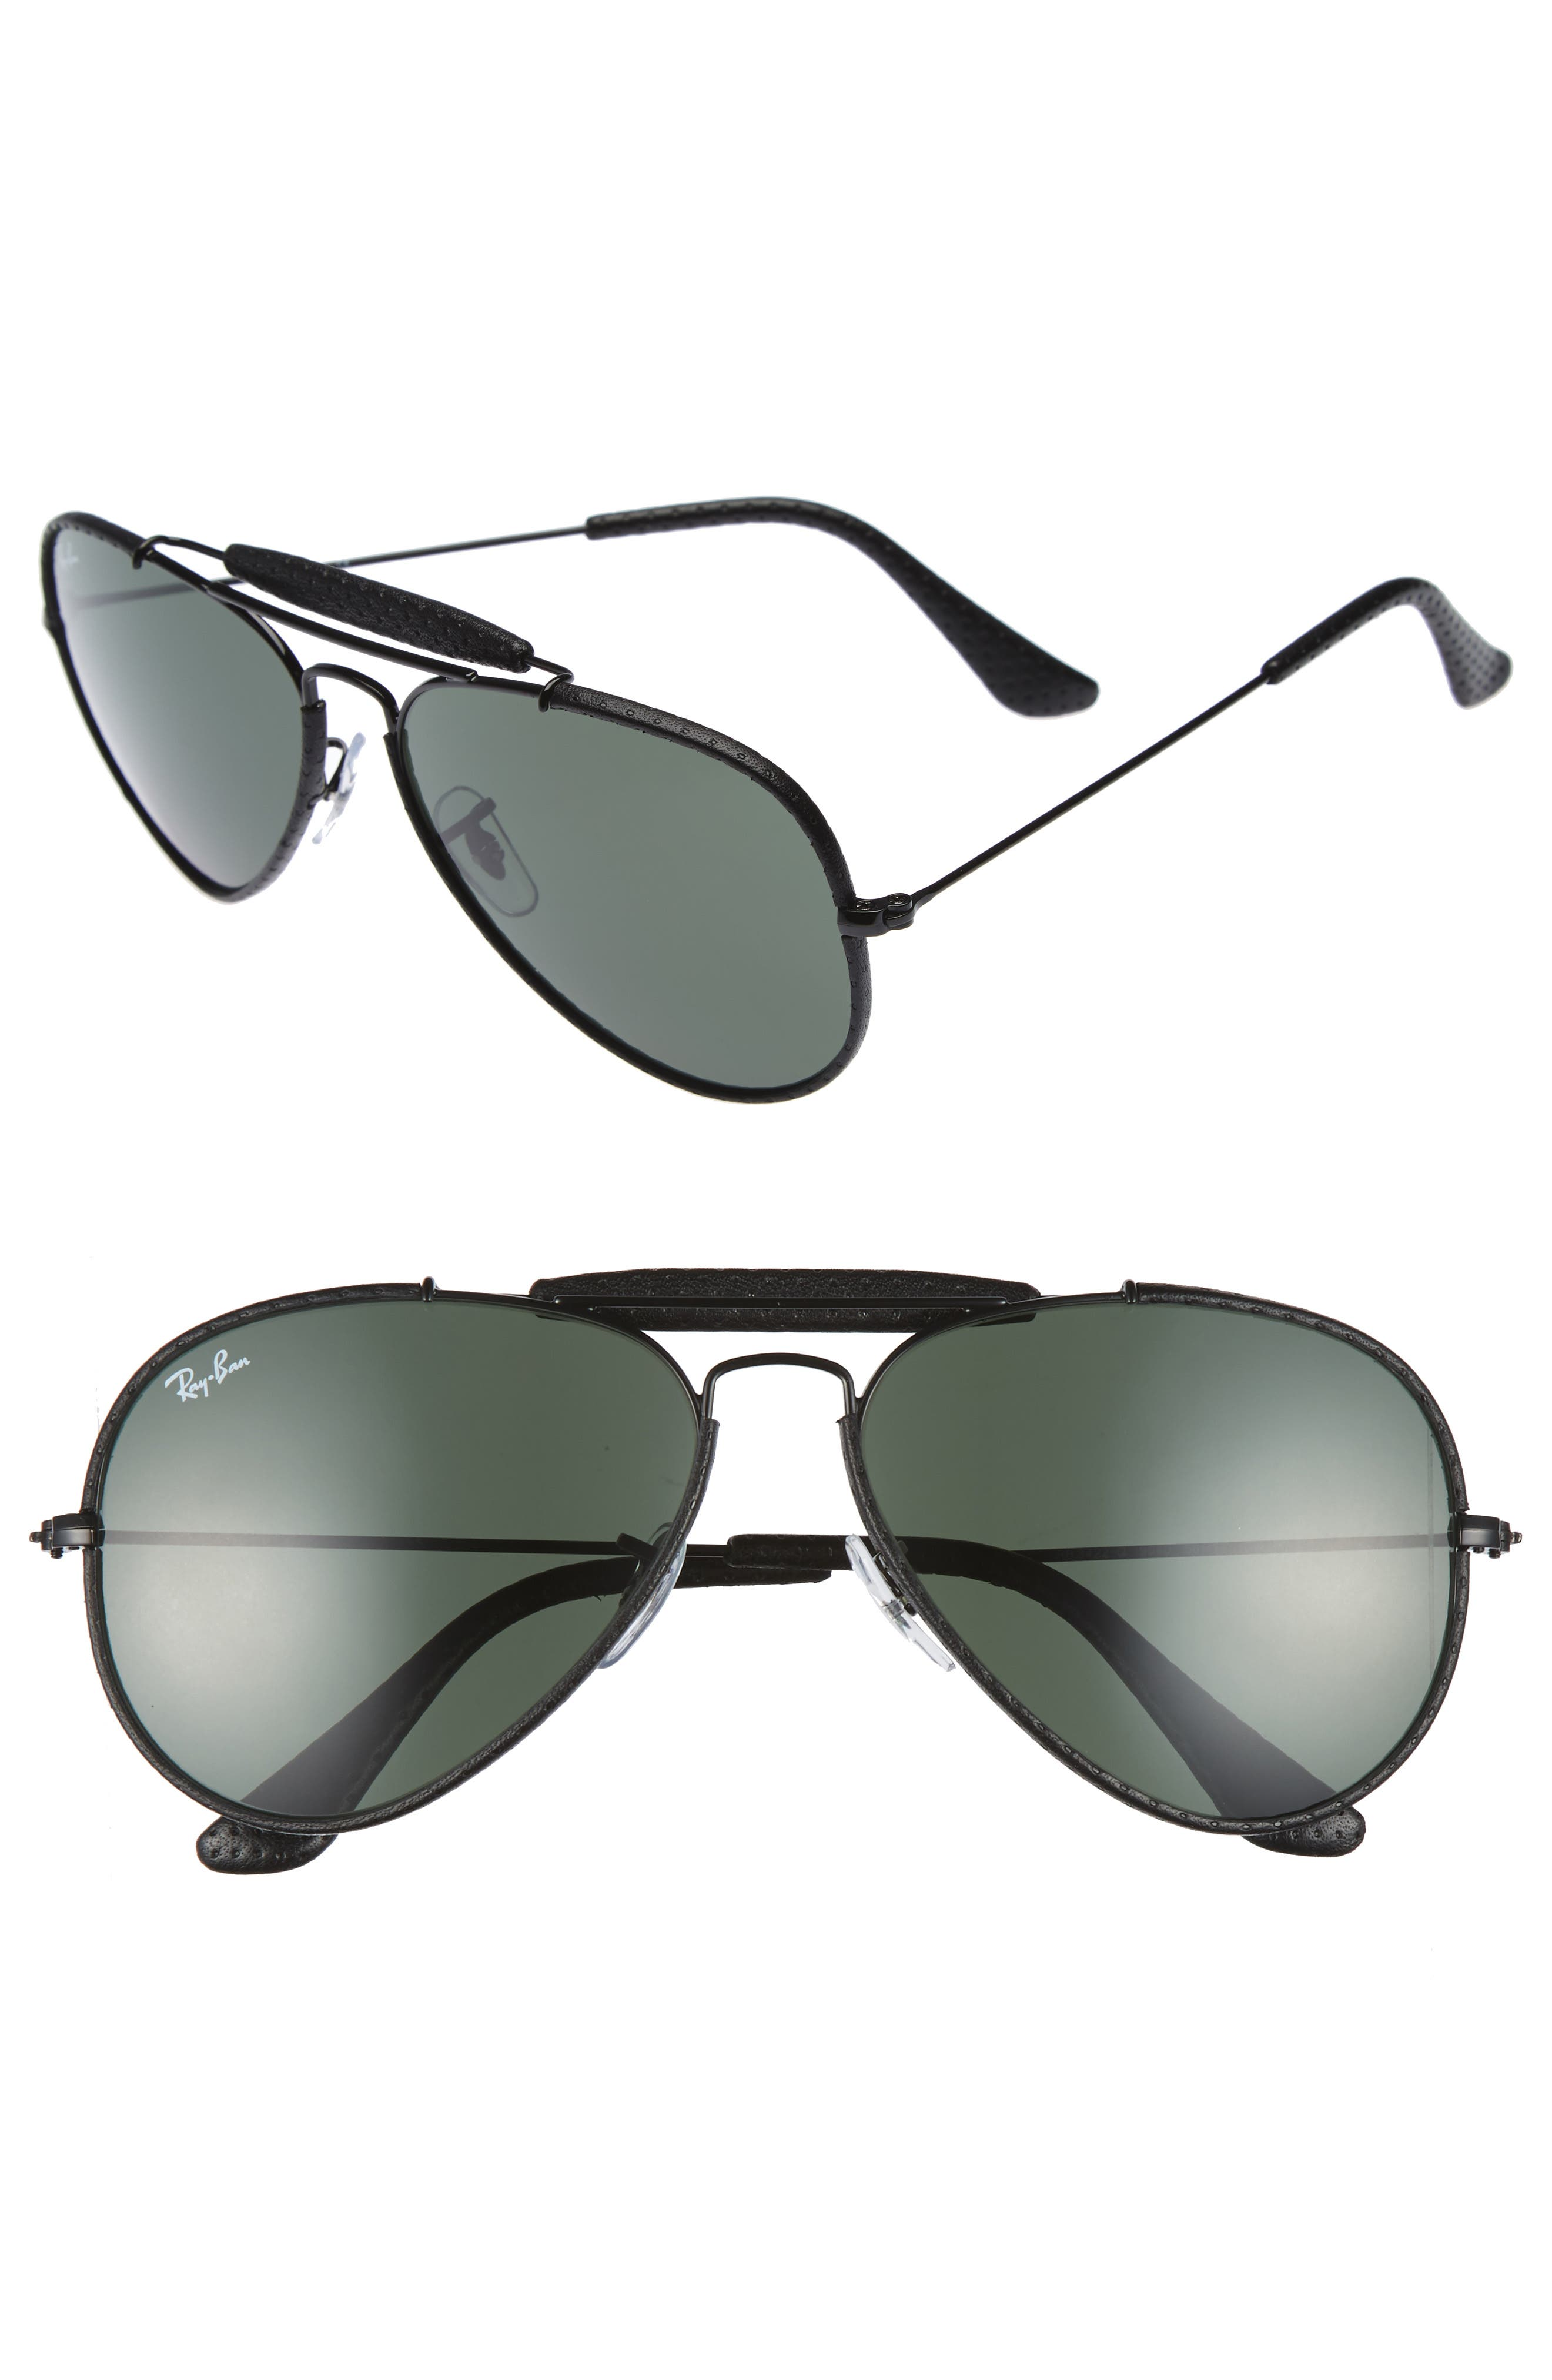 Outdoorsman 58mm Aviator Sunglasses,                         Main,                         color, Black/ Green